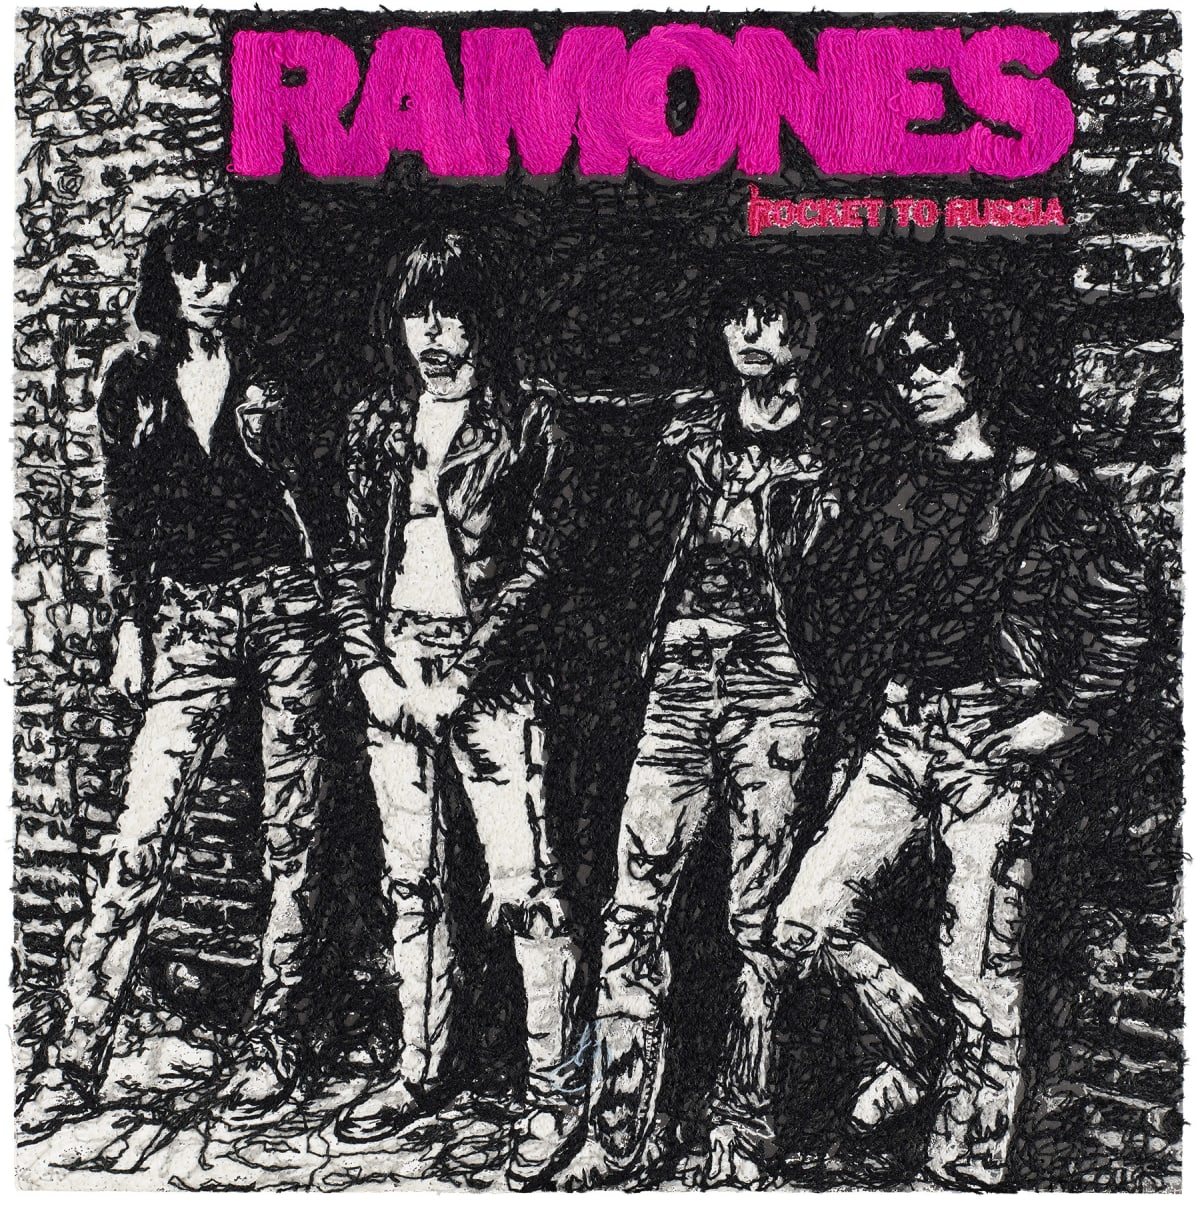 Stephen Wilson, Rocket to Russia, Ramones , 2019